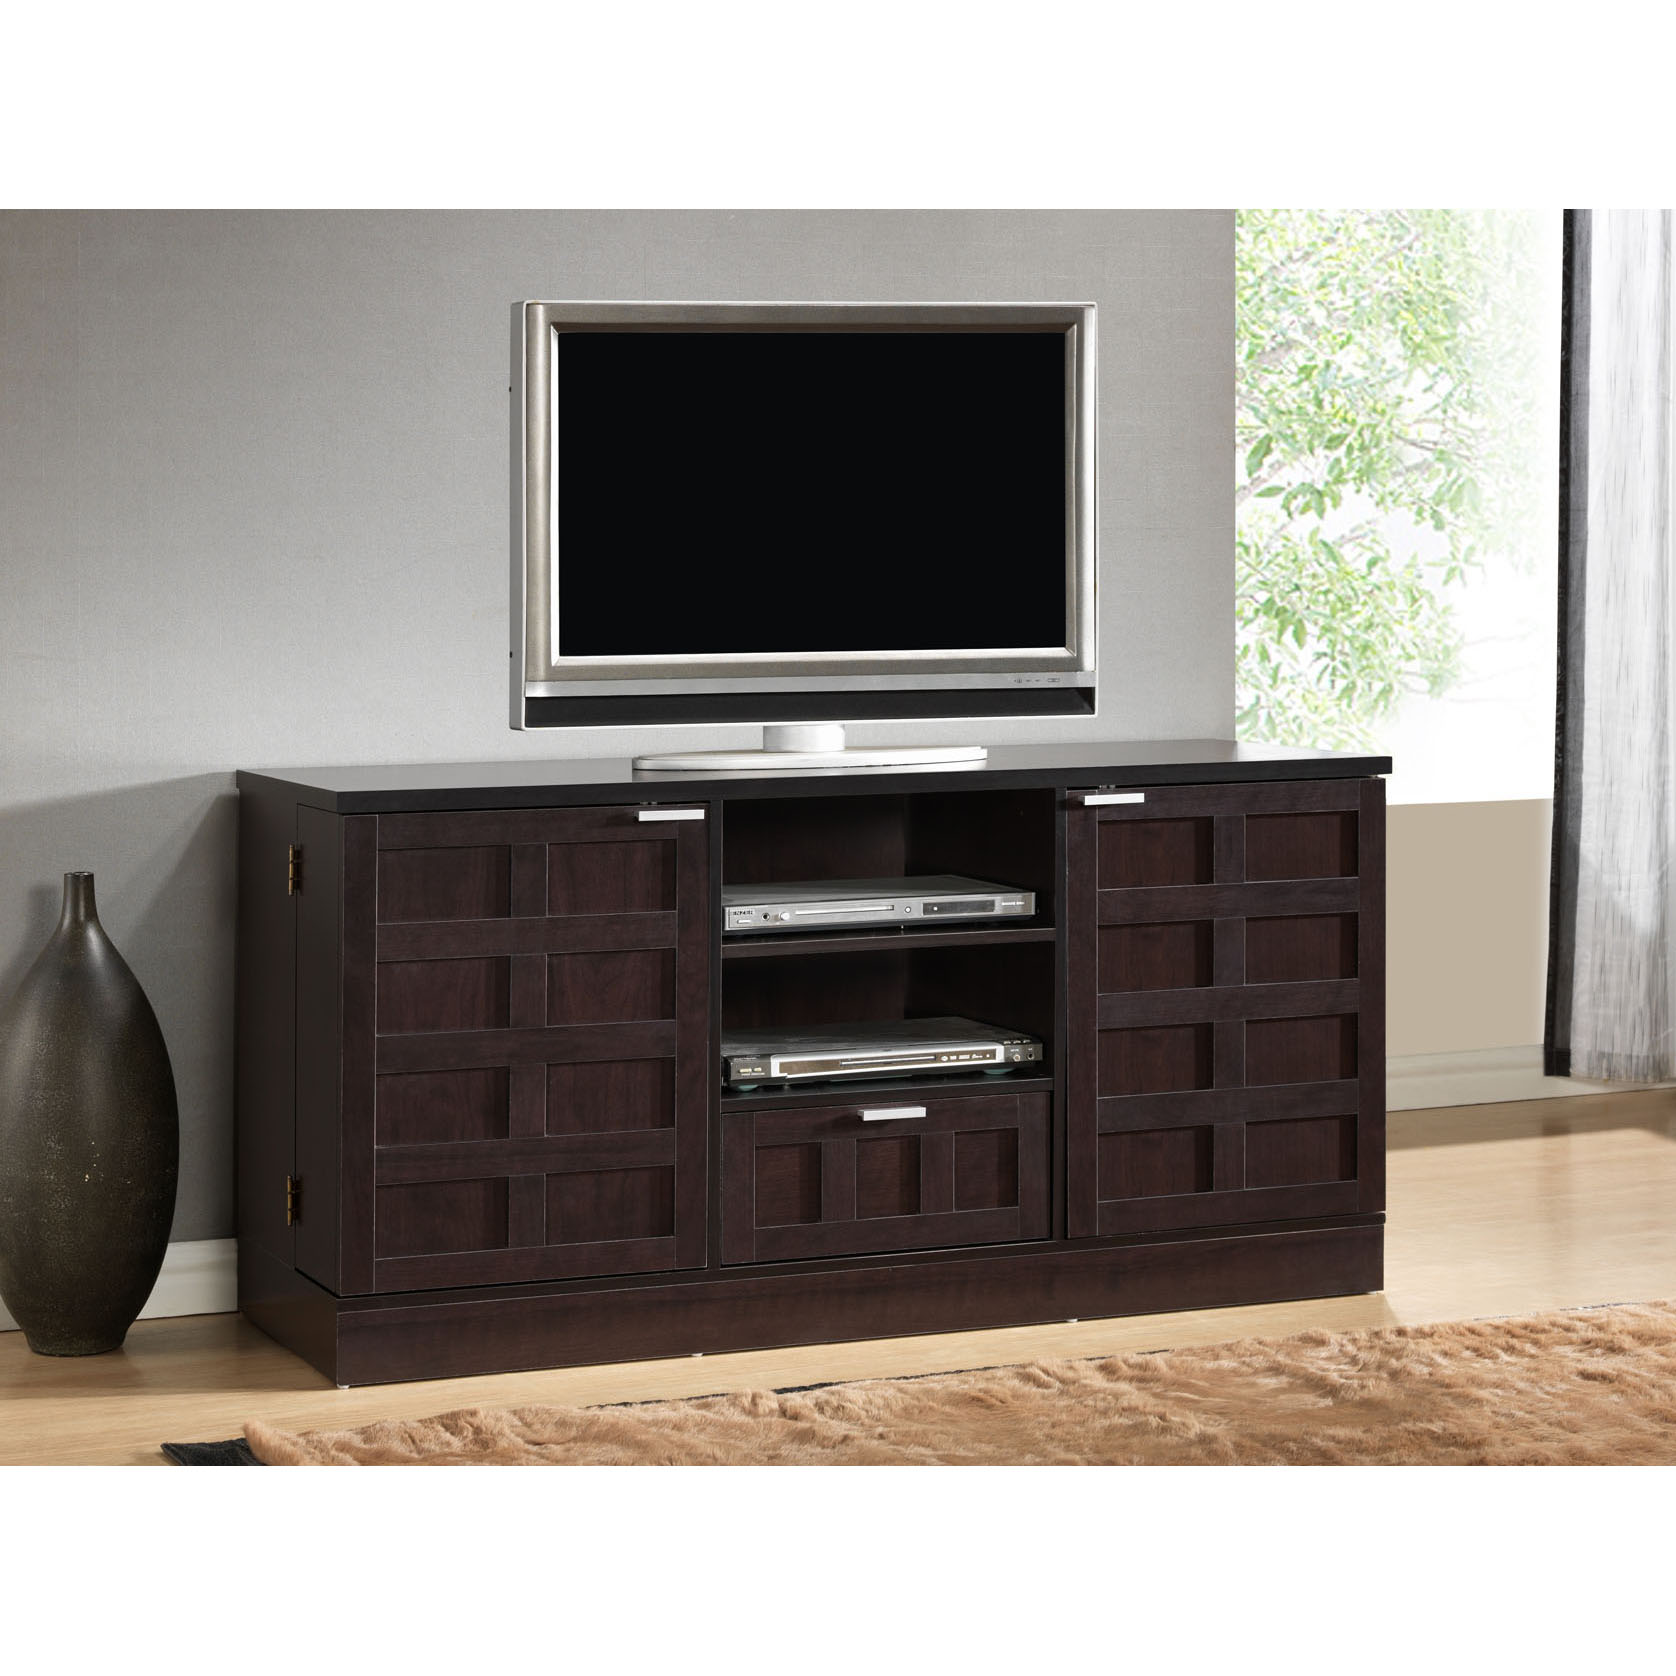 Wooden Cabinet Designs For Living Room long media cabinet for your living room | homesfeed